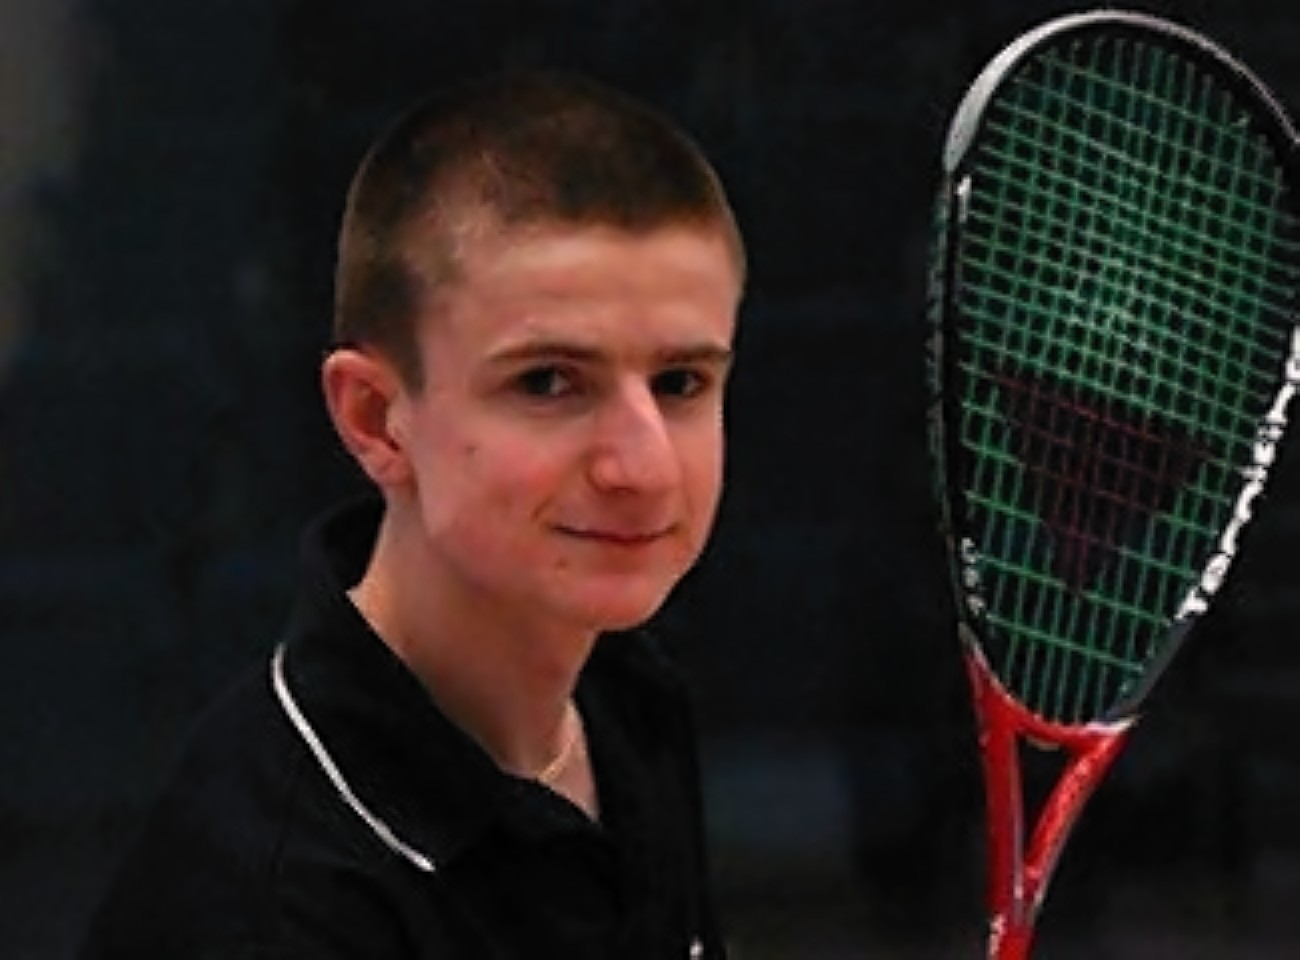 Inverness squash player Alan Clyne